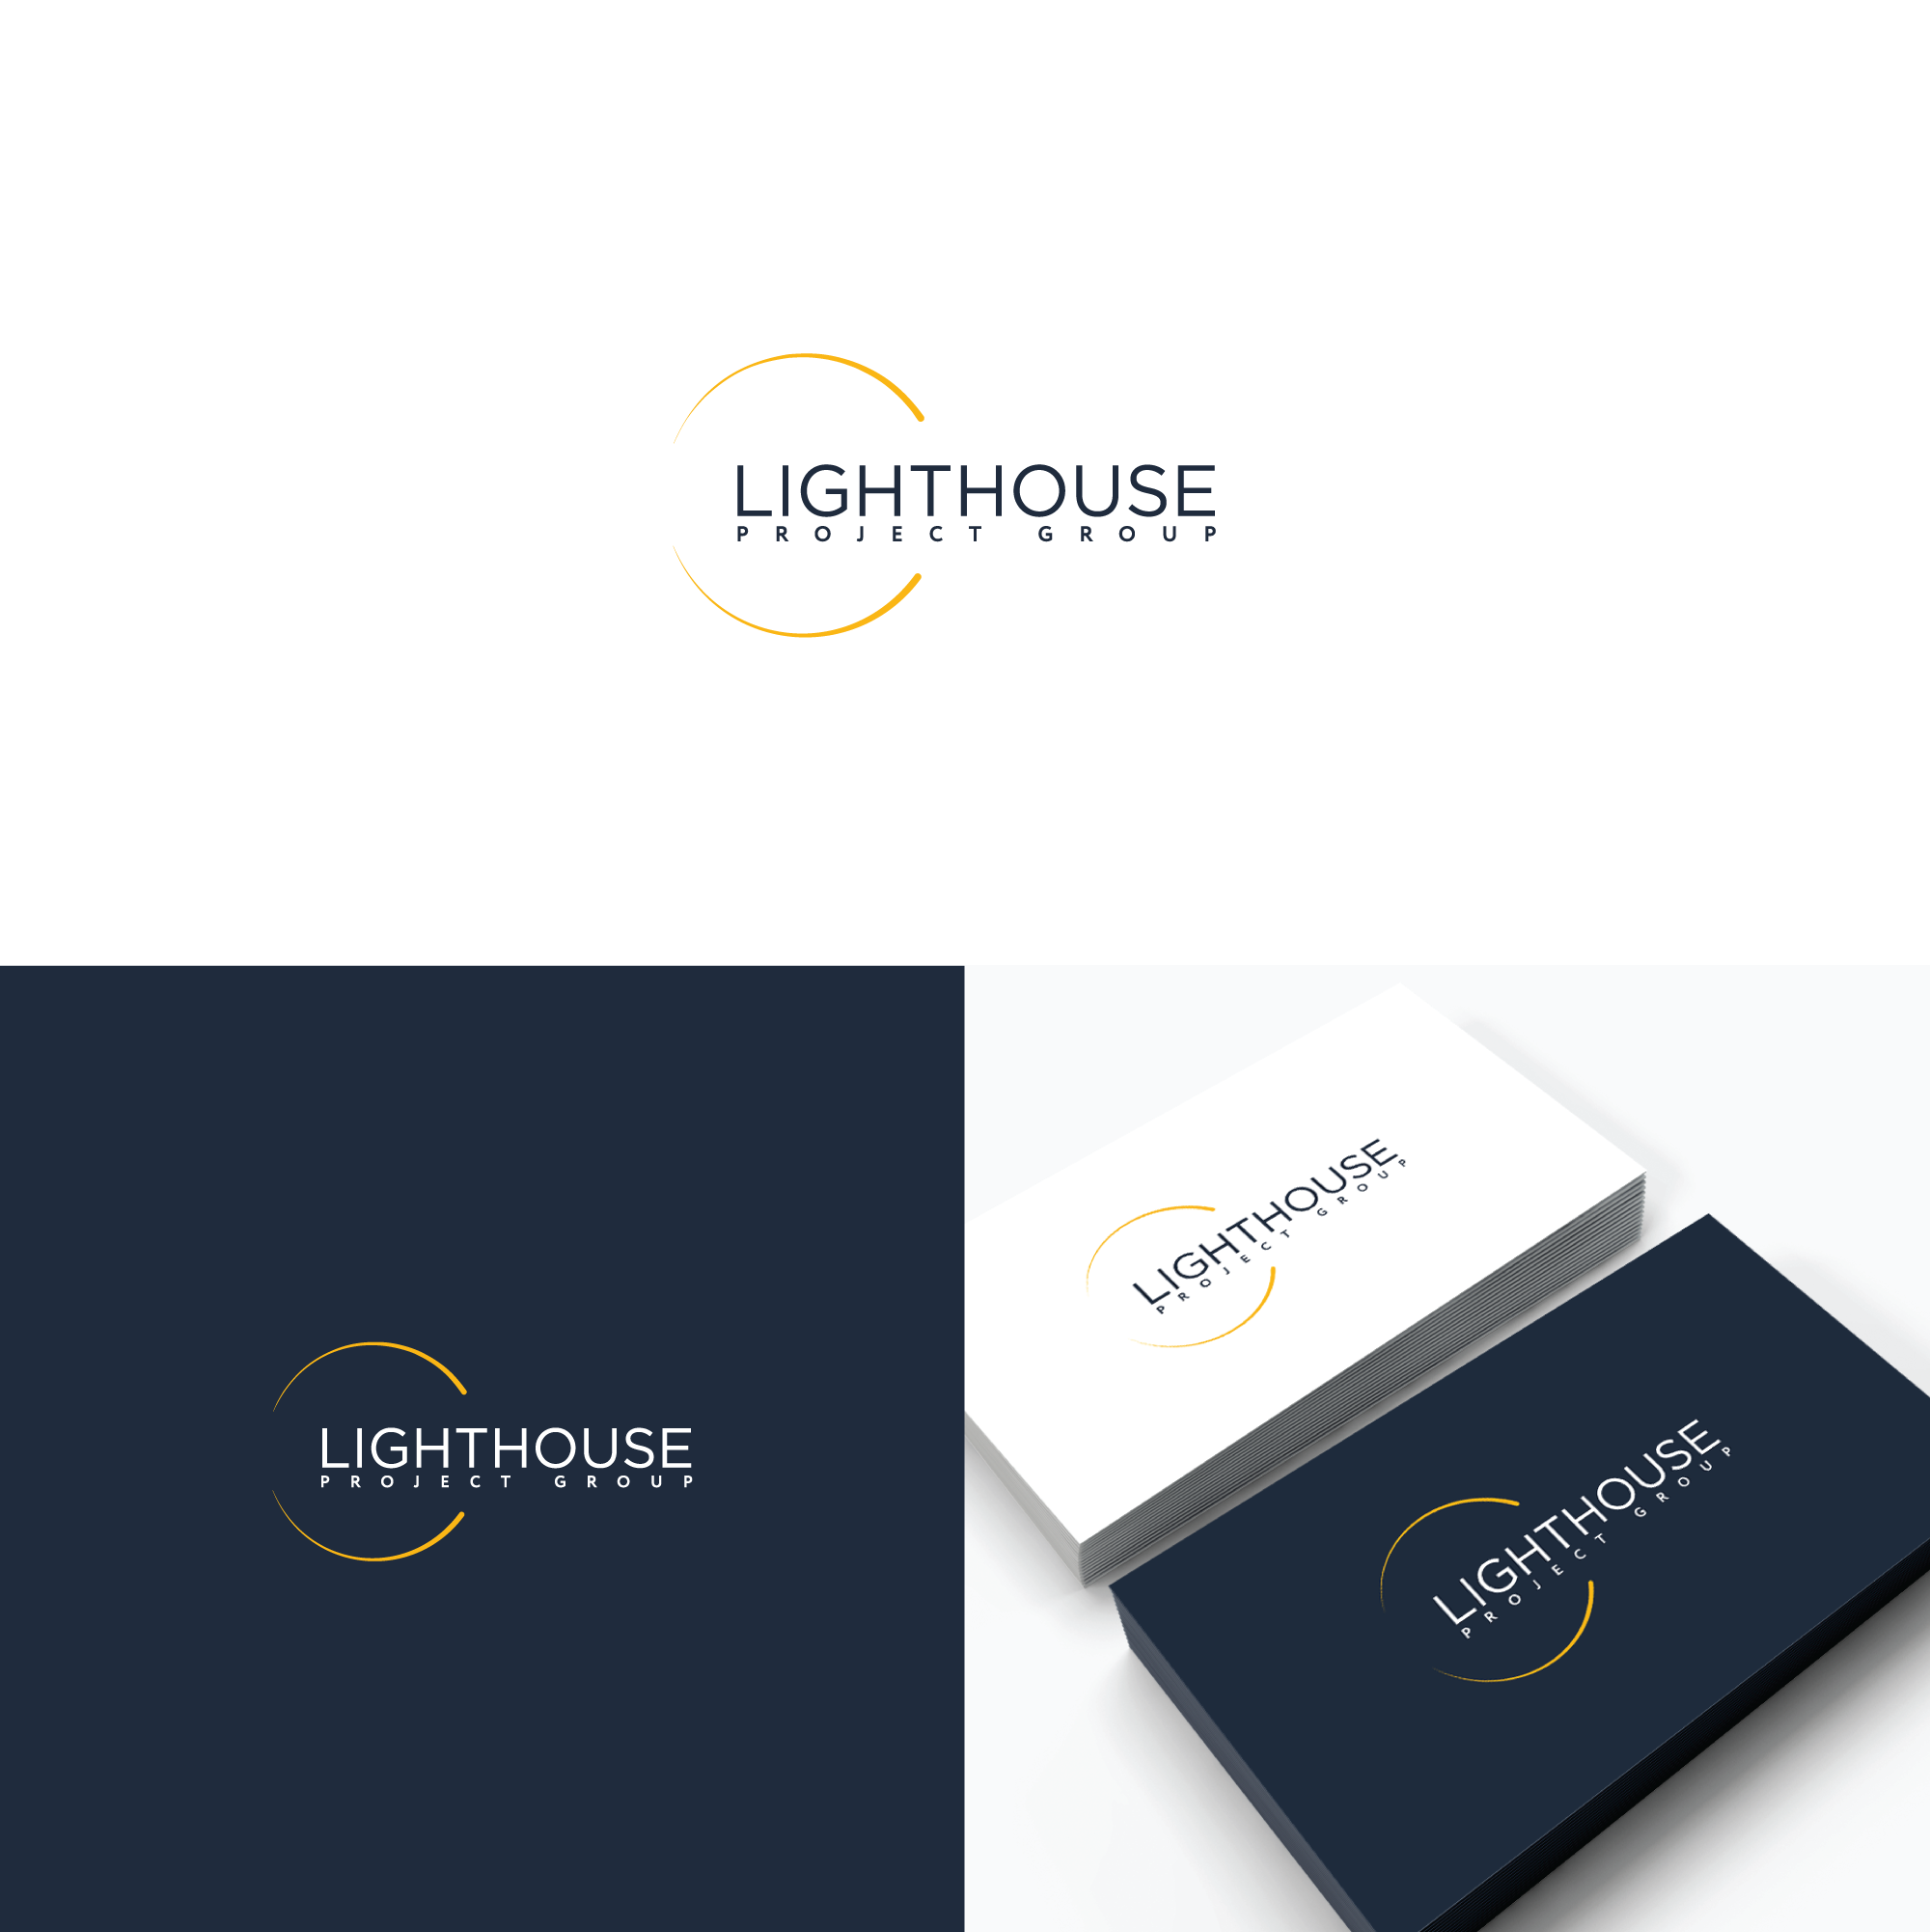 Help us shine the light on Lighthouse Project Group